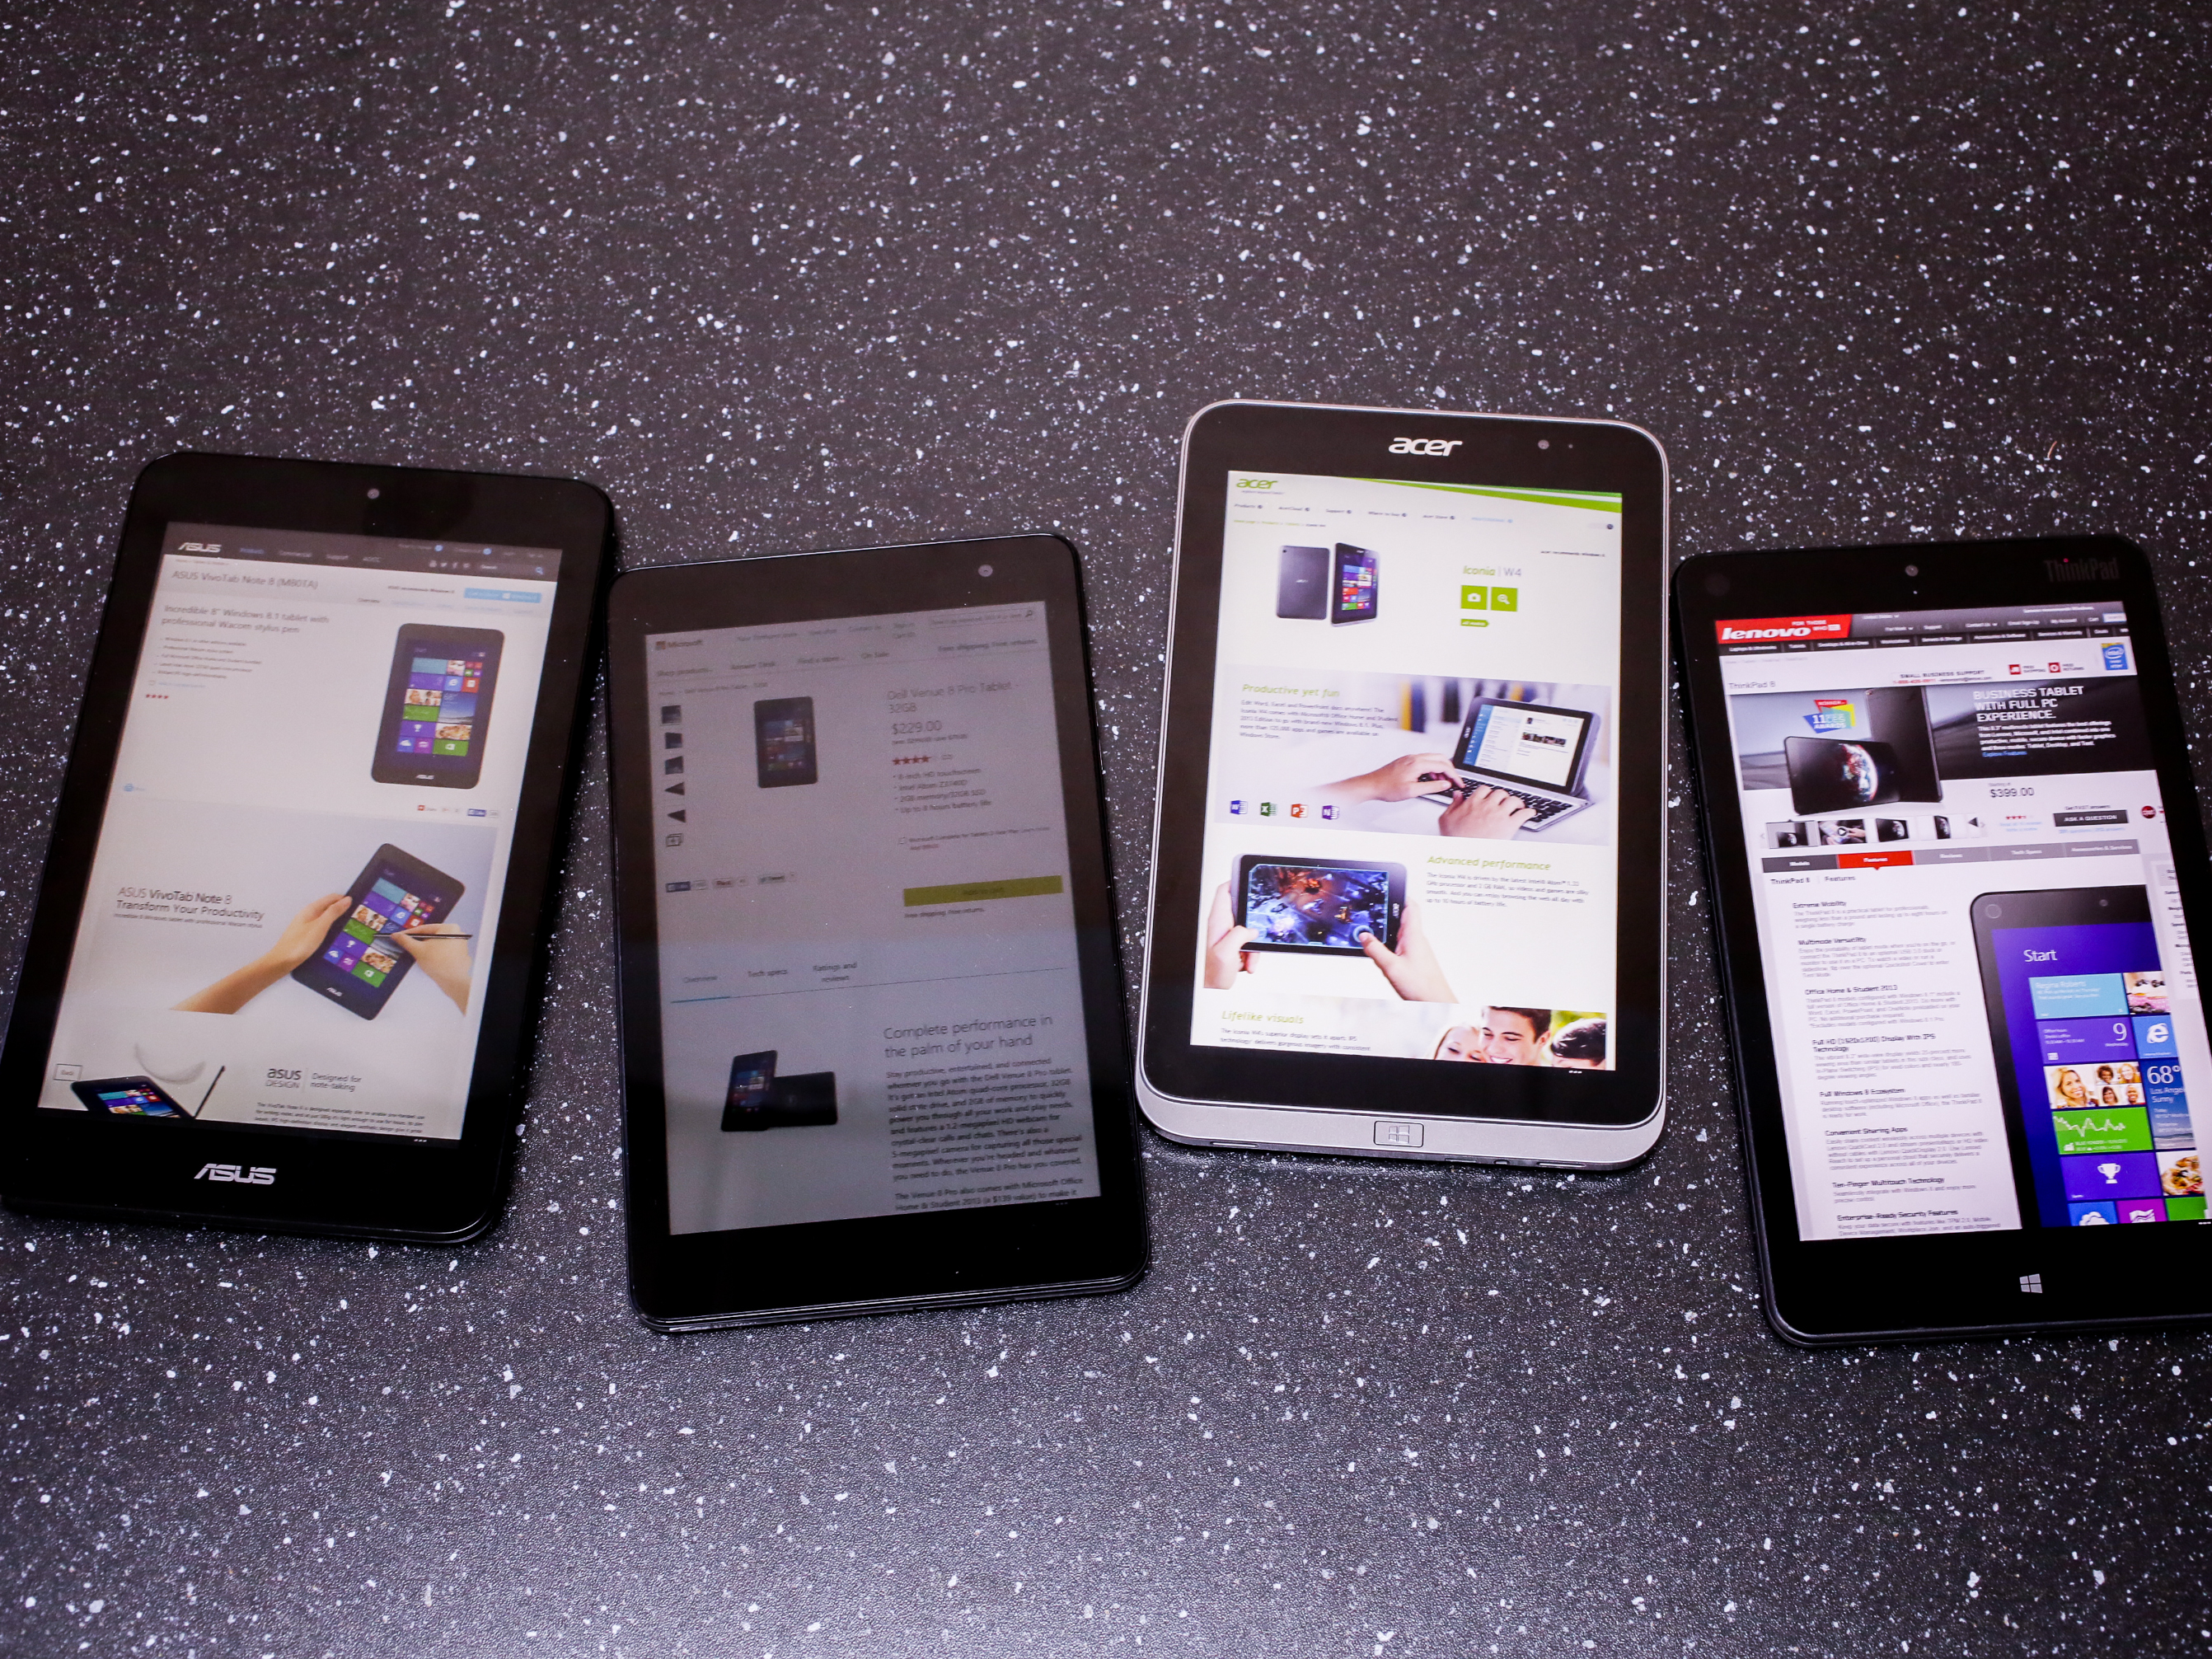 eight-inch-windoes-8-tablets-02.jpg